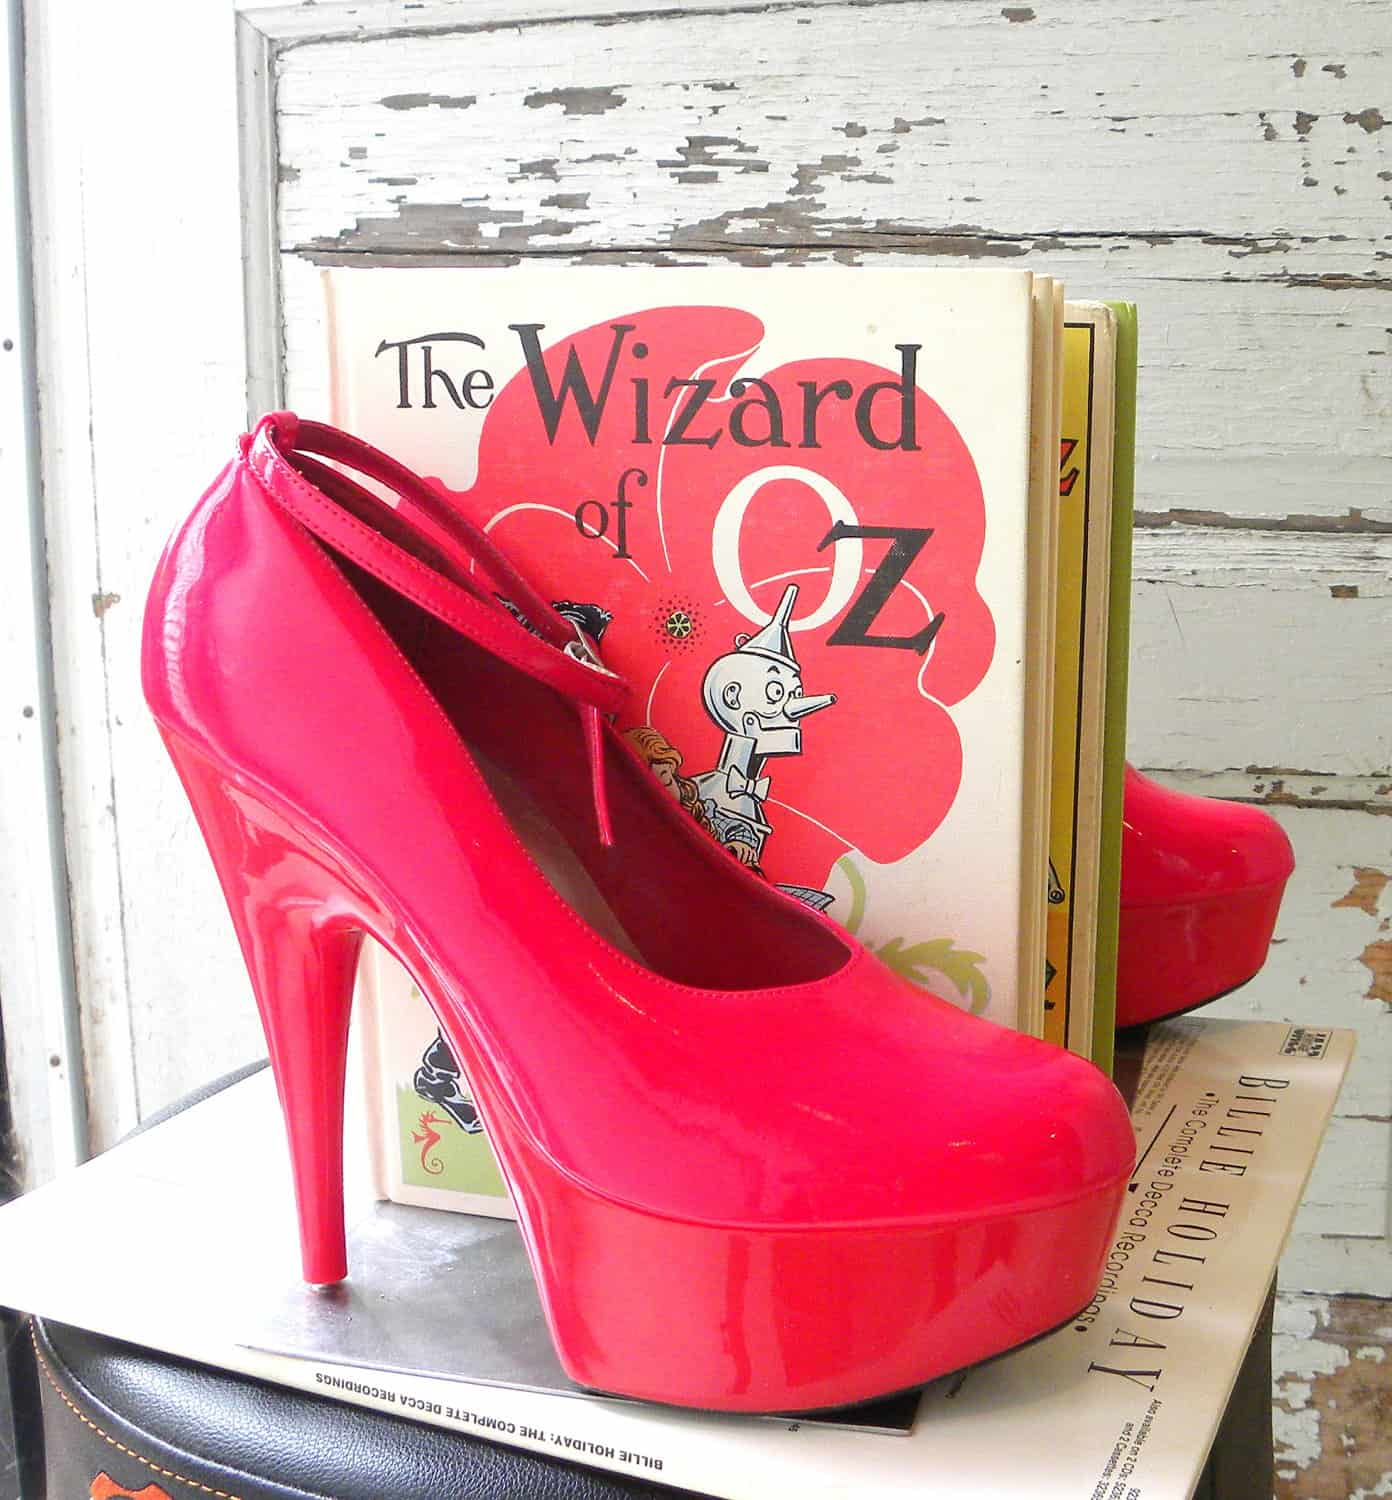 High heel book ends